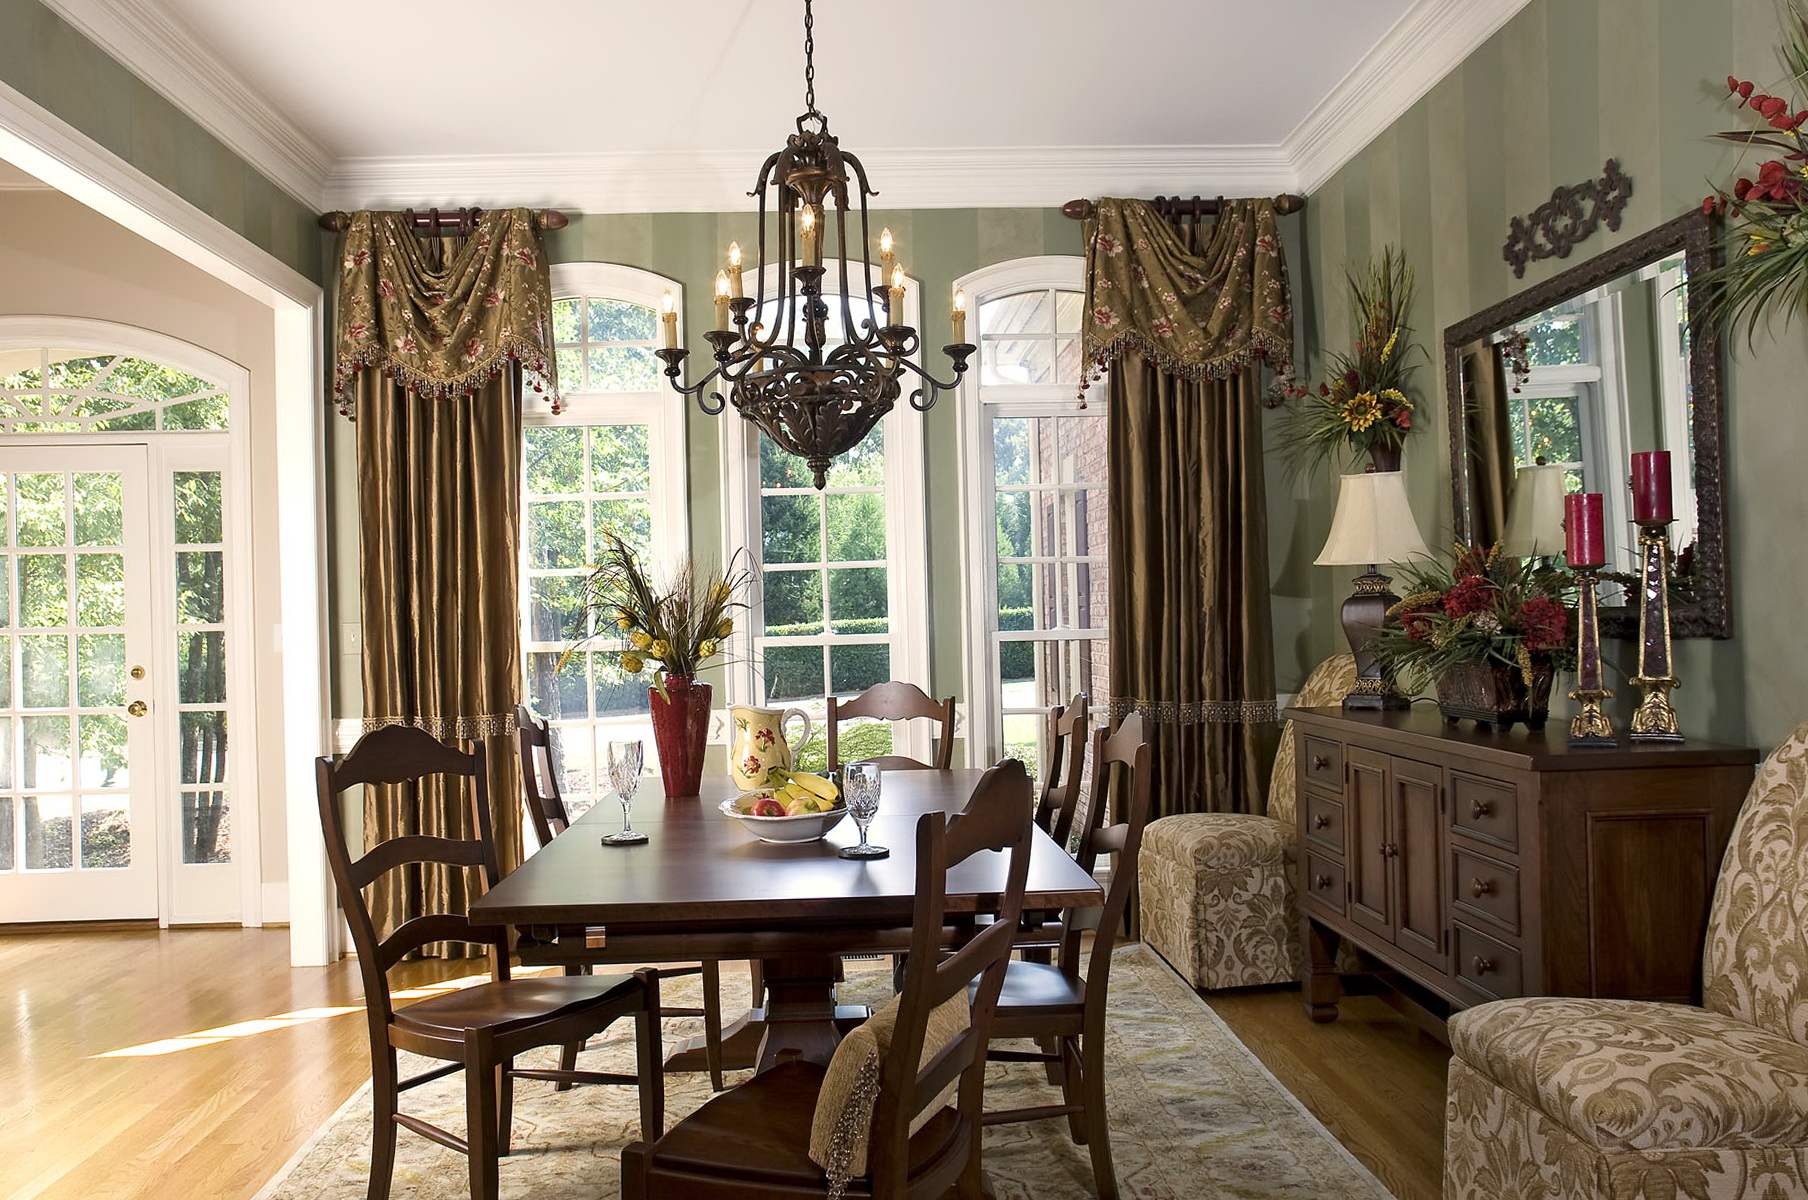 Curtain Formal Curtains Dining Rooms Dining Room Curtain ... on Dining Room Curtains Ideas  id=80546